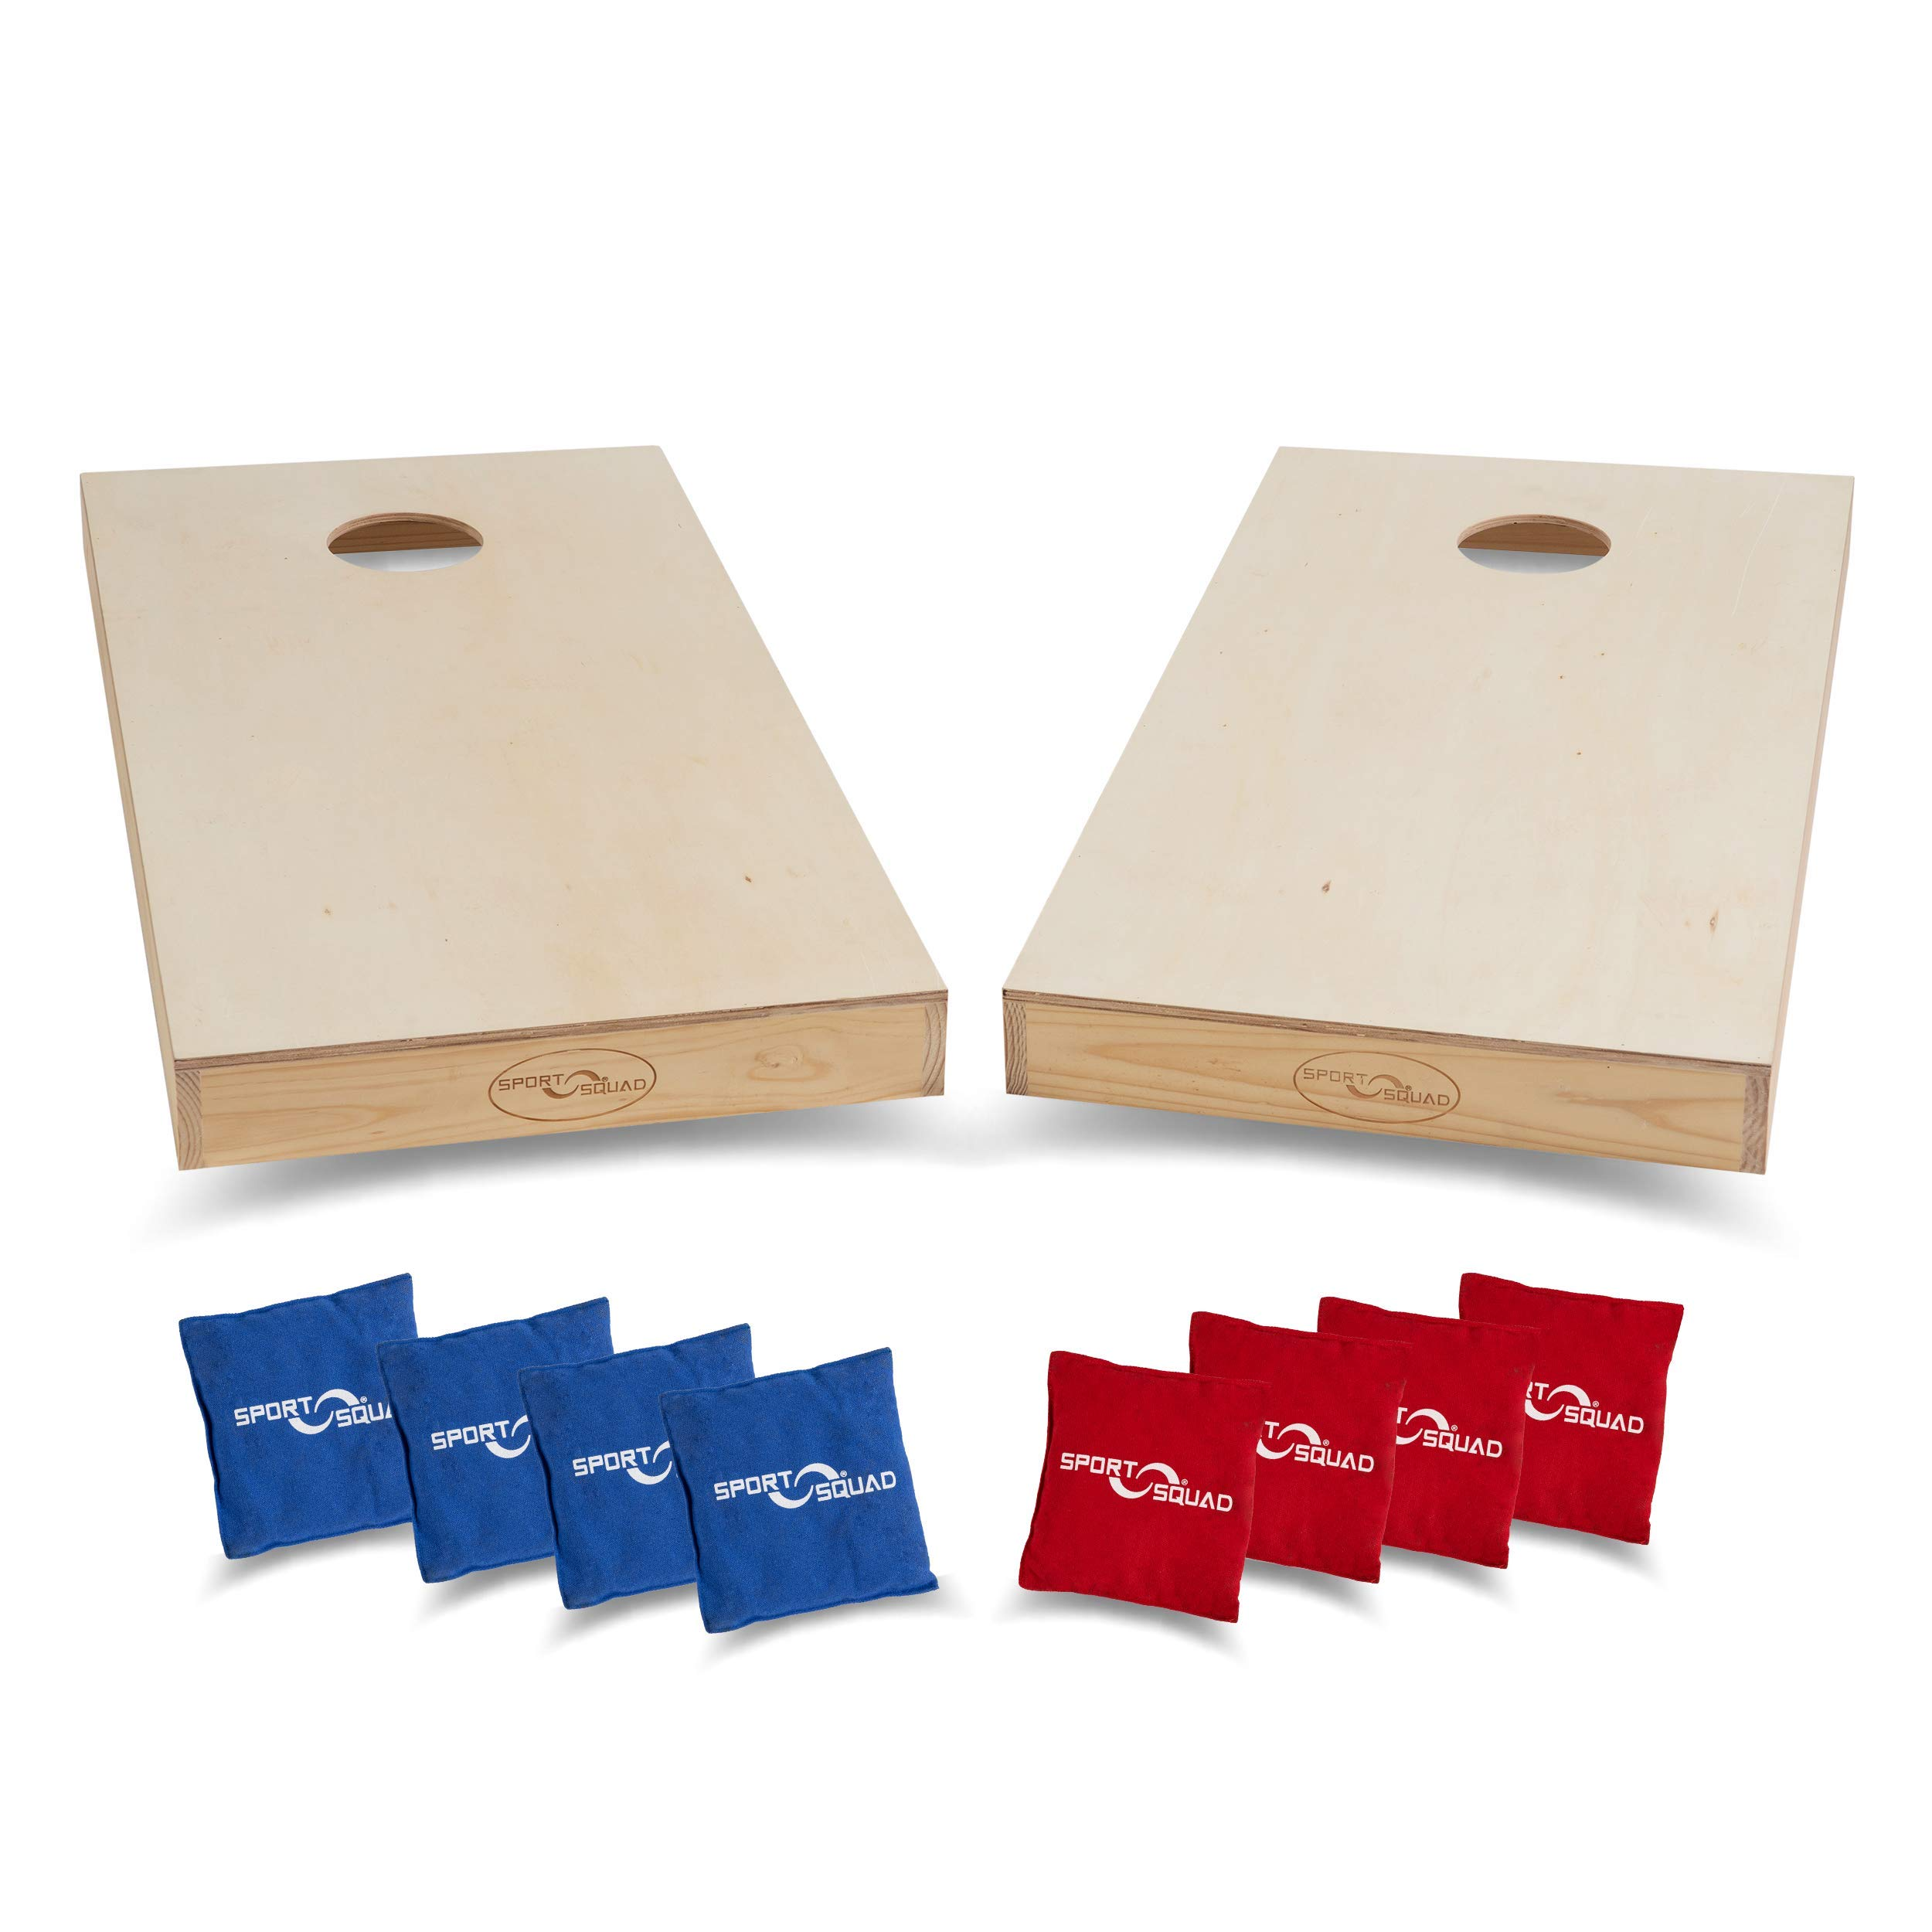 Sport Squad Premium Regulation Cornhole Game - Professional Grade Official Size Solid Wood Cornhole Boards with 8 Durable Portable Bean Bags - 4'x2' DIY Design - Indoor and Outdoor Compatible by Sport Squad